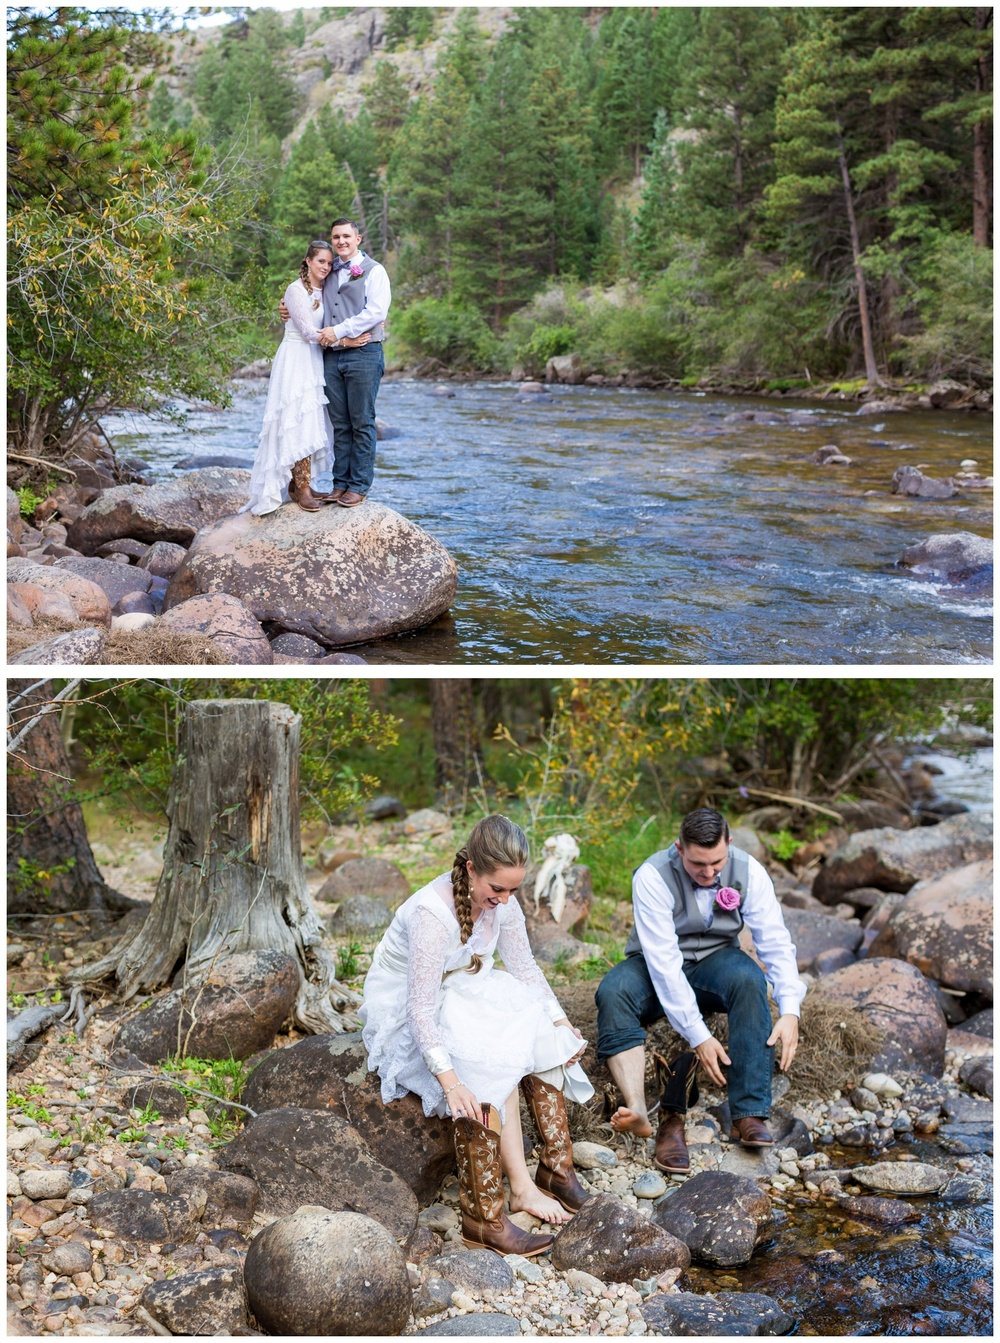 Poudre Canyon Wedding Photography10.jpg